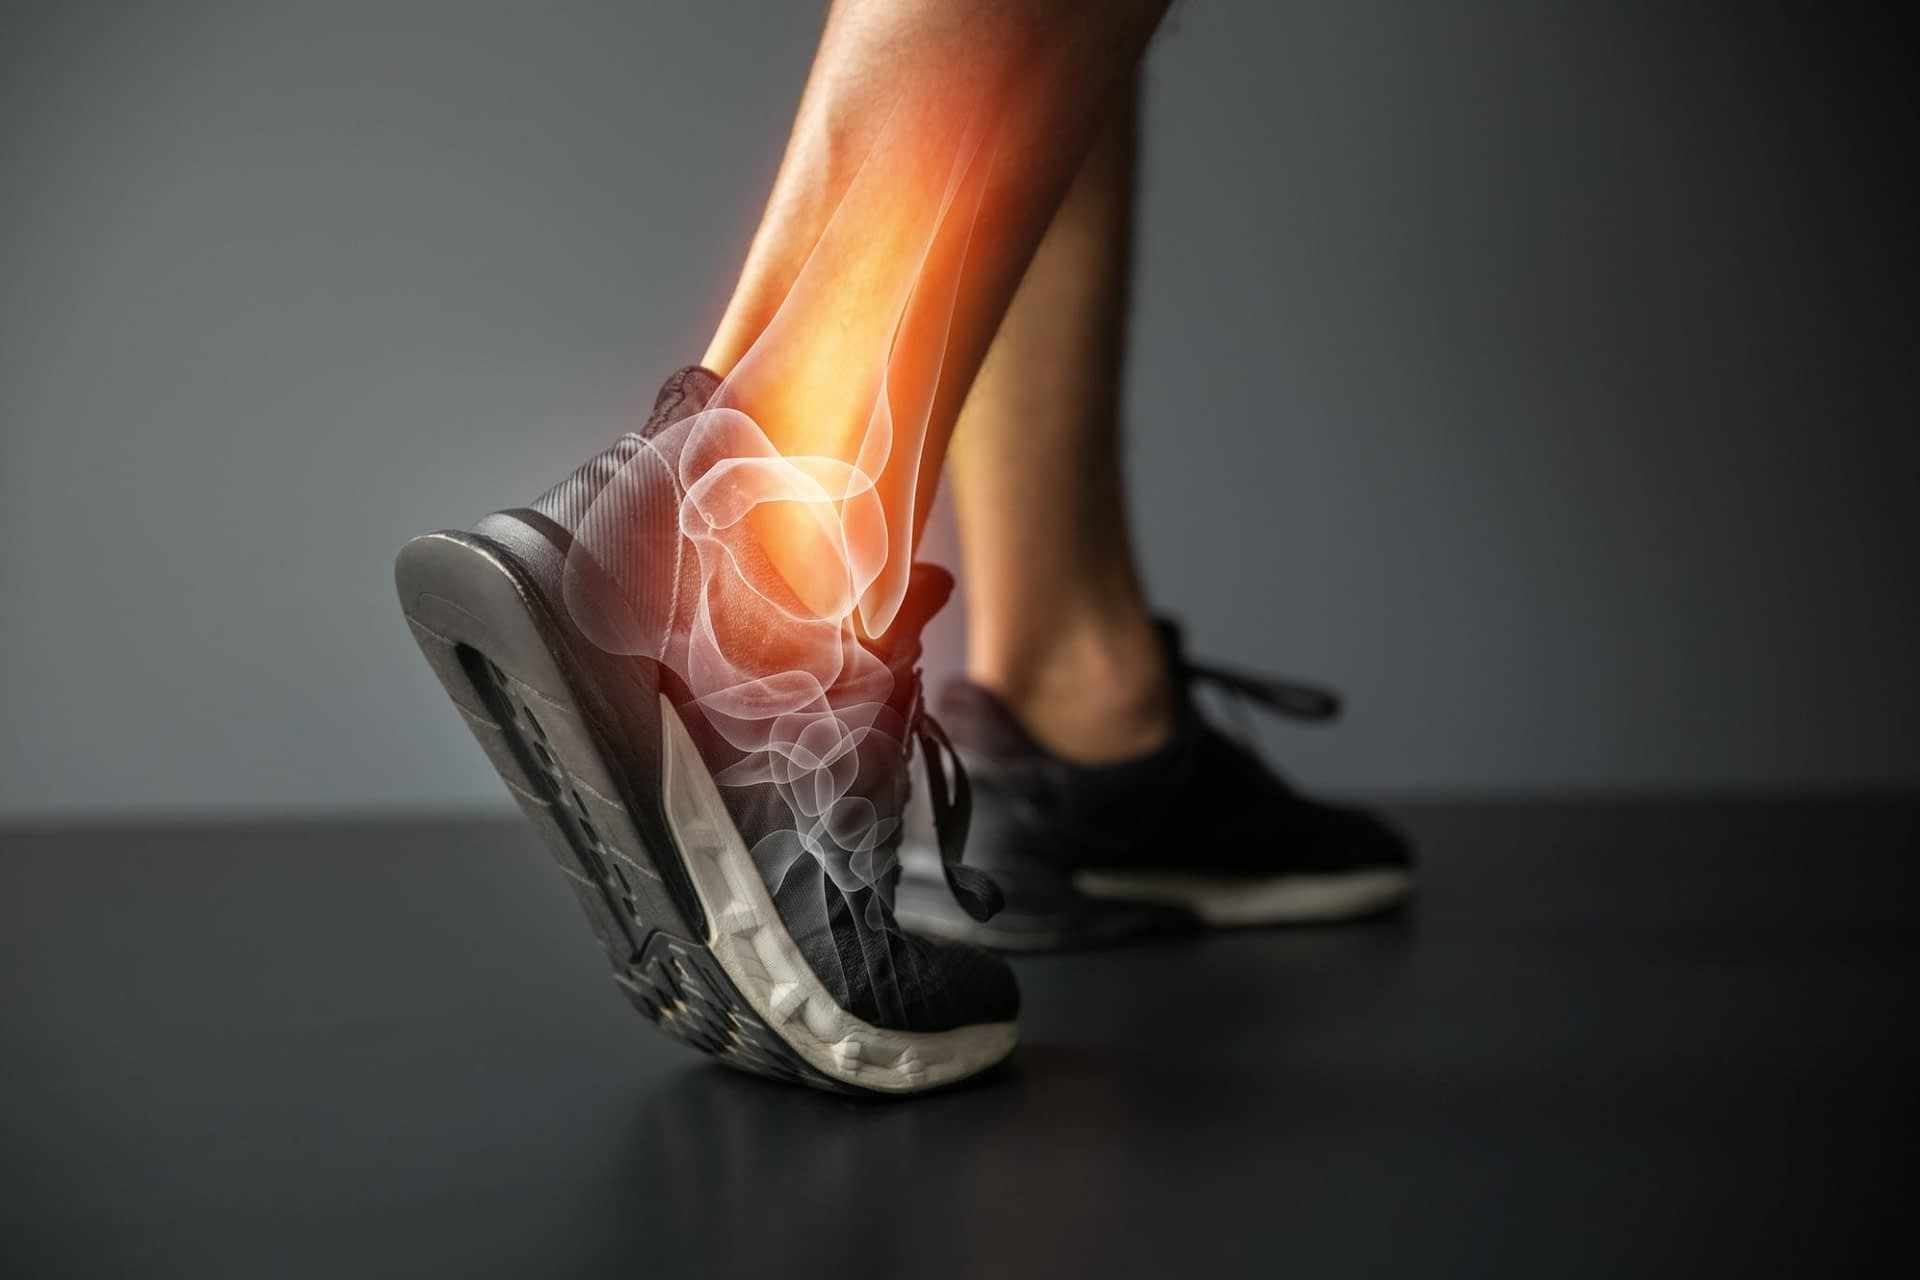 Ankle Injury - Easton, PA - Twin Rivers Podiatry Easton